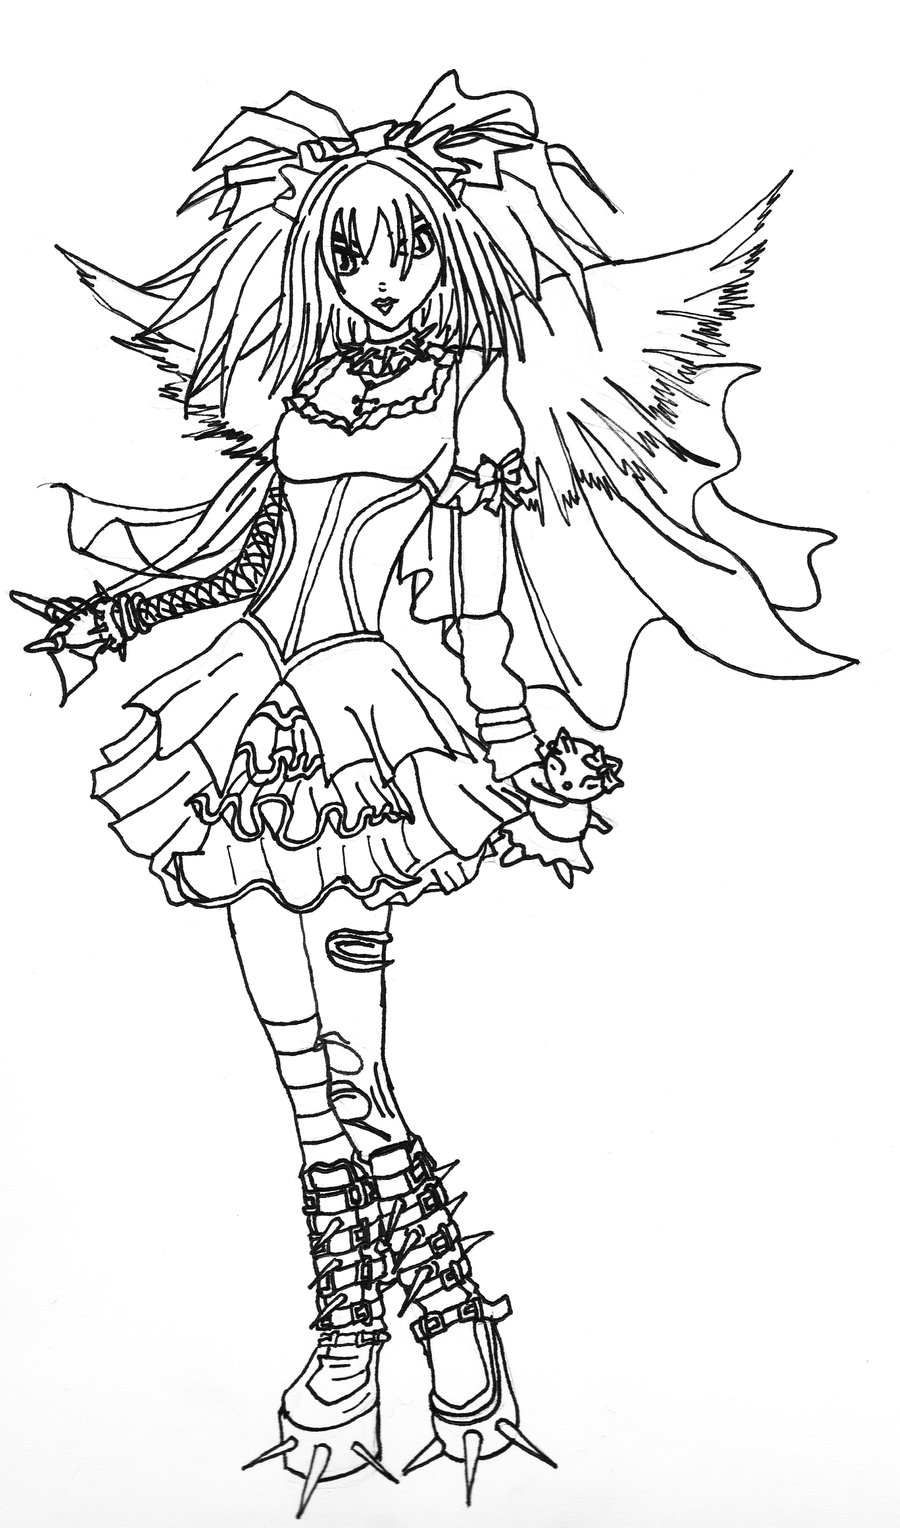 Dark angel coloring download dark angel coloring for Angel coloring pages